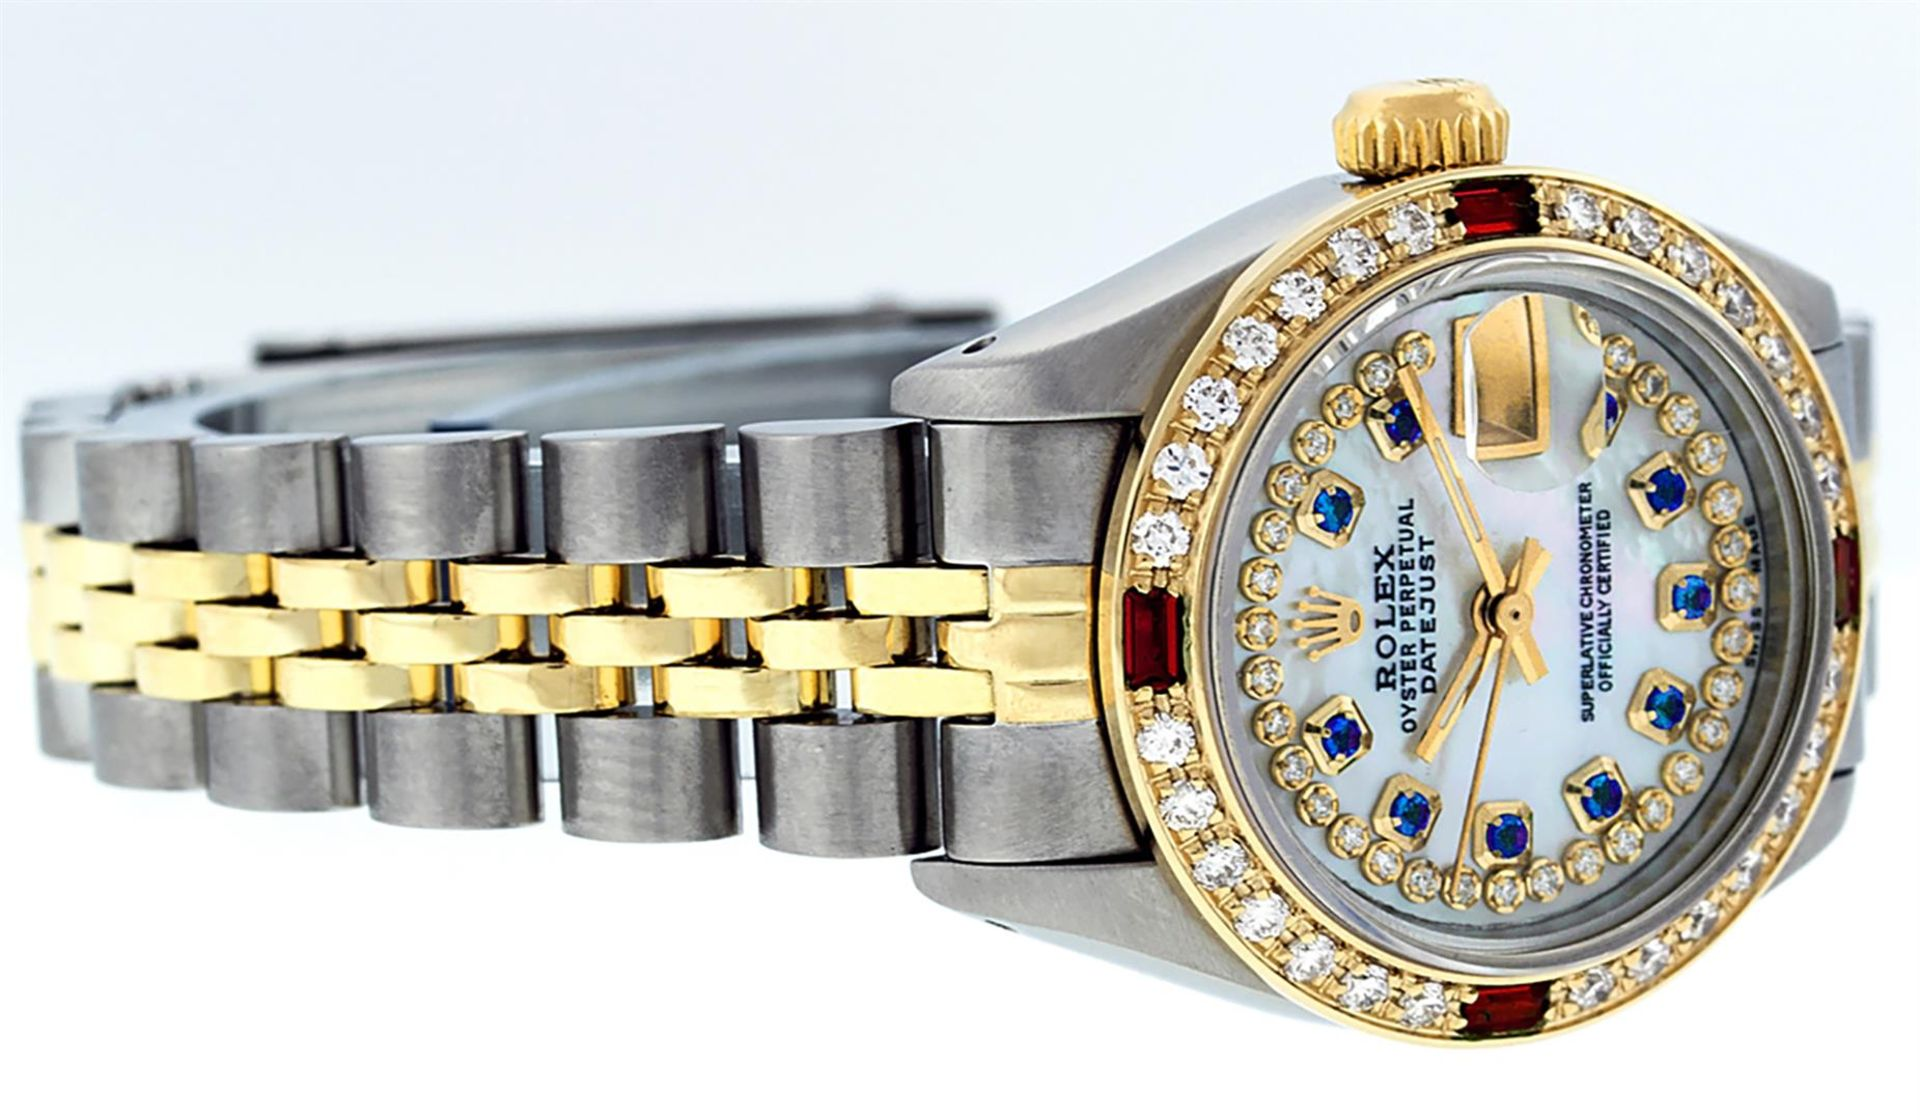 Rolex Ladies 2 Tone MOP Sapphire & Ruby 26MM Oyster Perpetual Datejust Wriswatch - Image 2 of 9